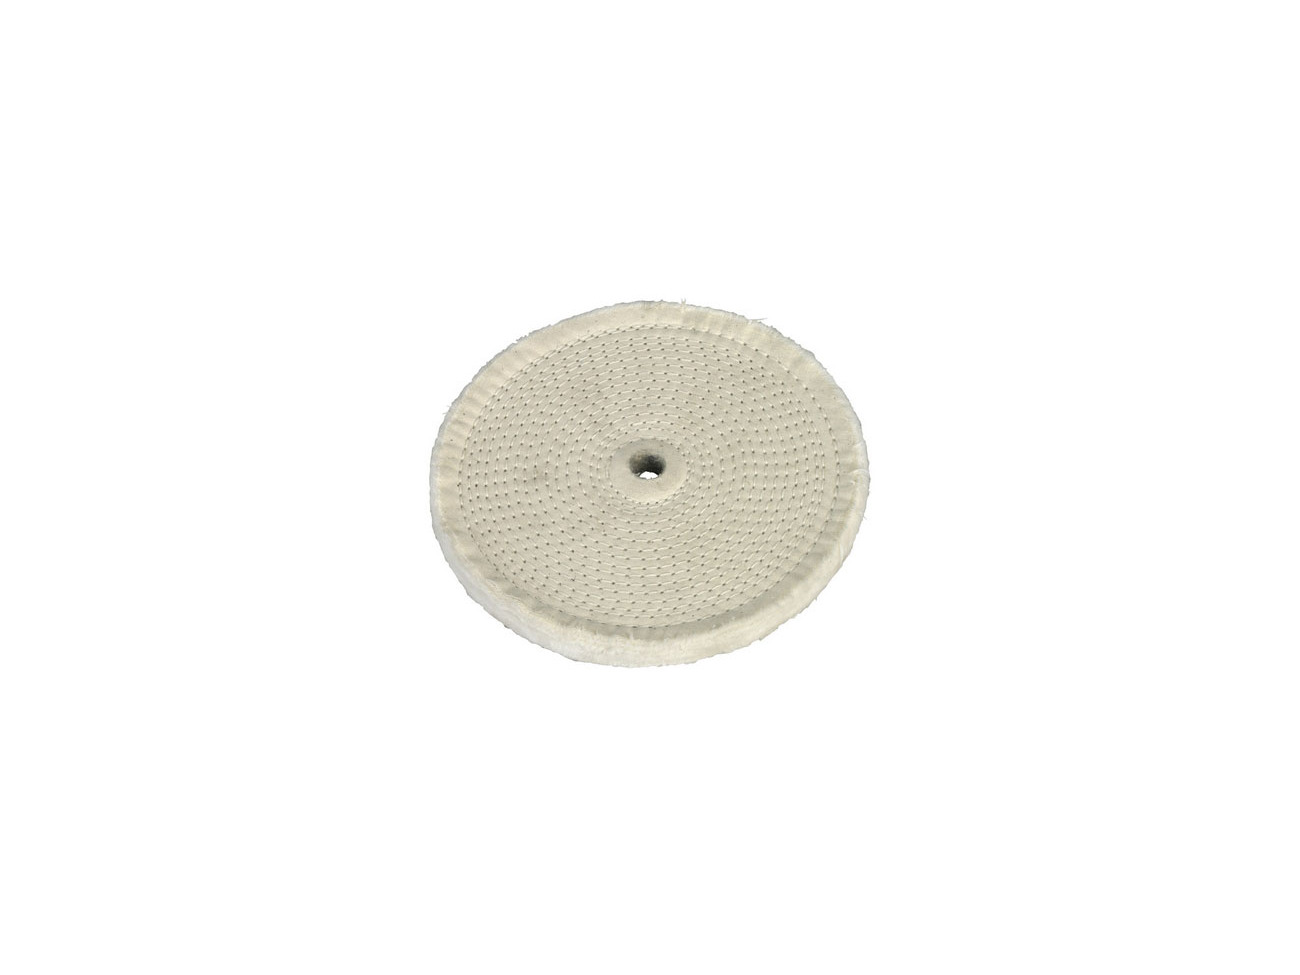 Swell Sealey Bg200Bw 200Mm Buffing Wheel For Bench Grinder Squirreltailoven Fun Painted Chair Ideas Images Squirreltailovenorg